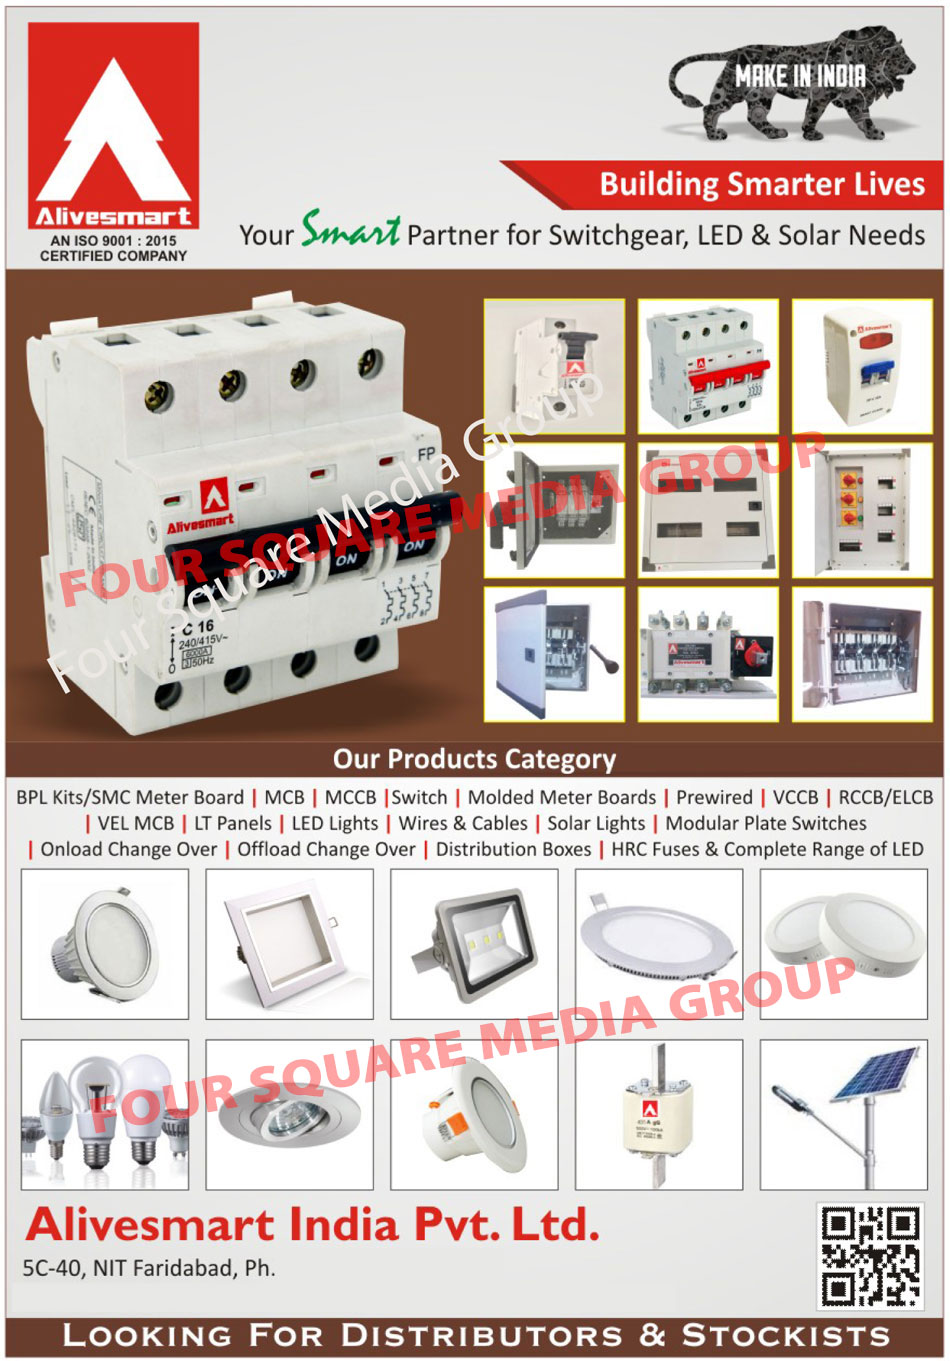 BPL Kits, SMC Meter Boards, MCB, MCCB, Switches, Molded Meter Boards, Prewired, VCCB, RCCB, ELCB, VEL MCB, LT Panels, Led Lights, Wires, Cables, Solar Lights, Modular Plate Switches, Onload Change Over, Distribution Boxes, HRC Fuses, Switchgears